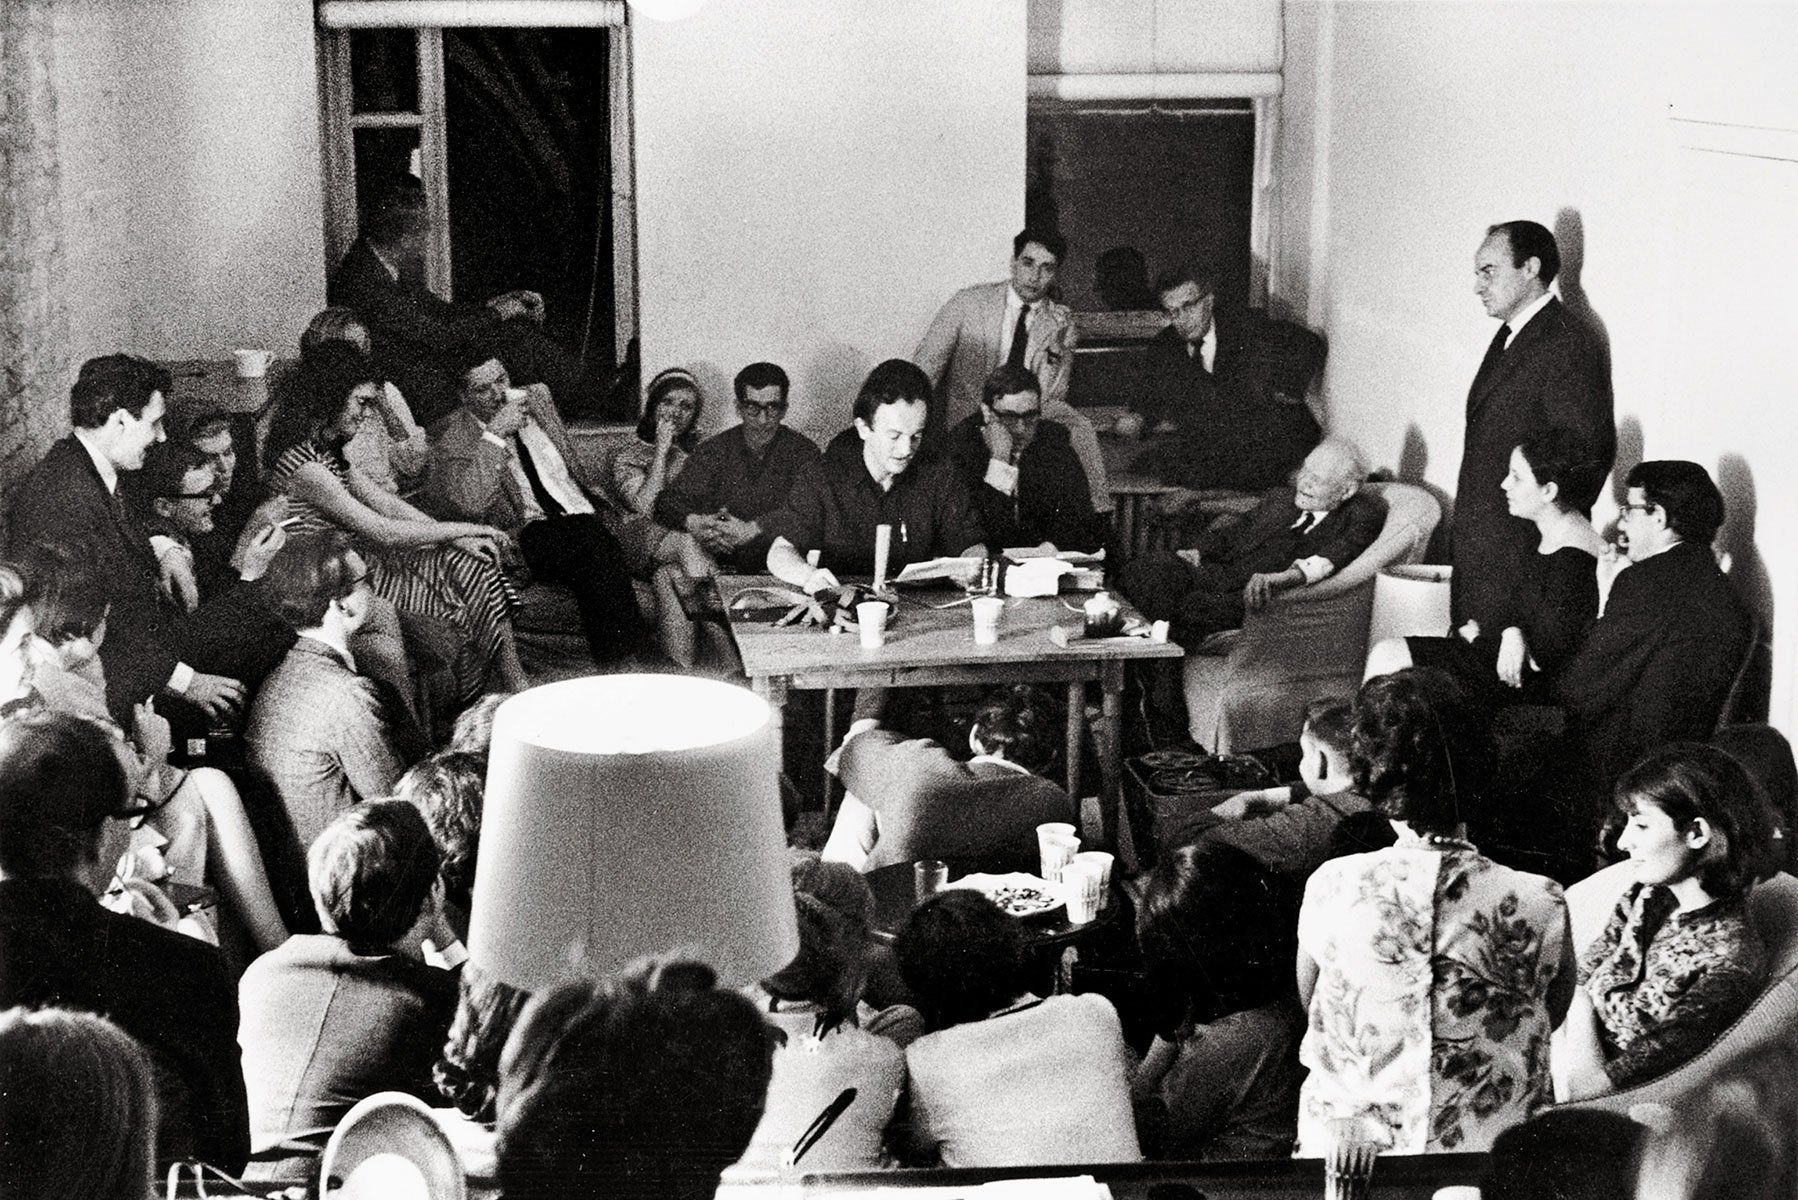 Frank O'Hara reads at the party given for Italian poet Giuseppe Ungaretti at the loft of Frank O'Hara and Joe LeSueur, New York City, May 1964.